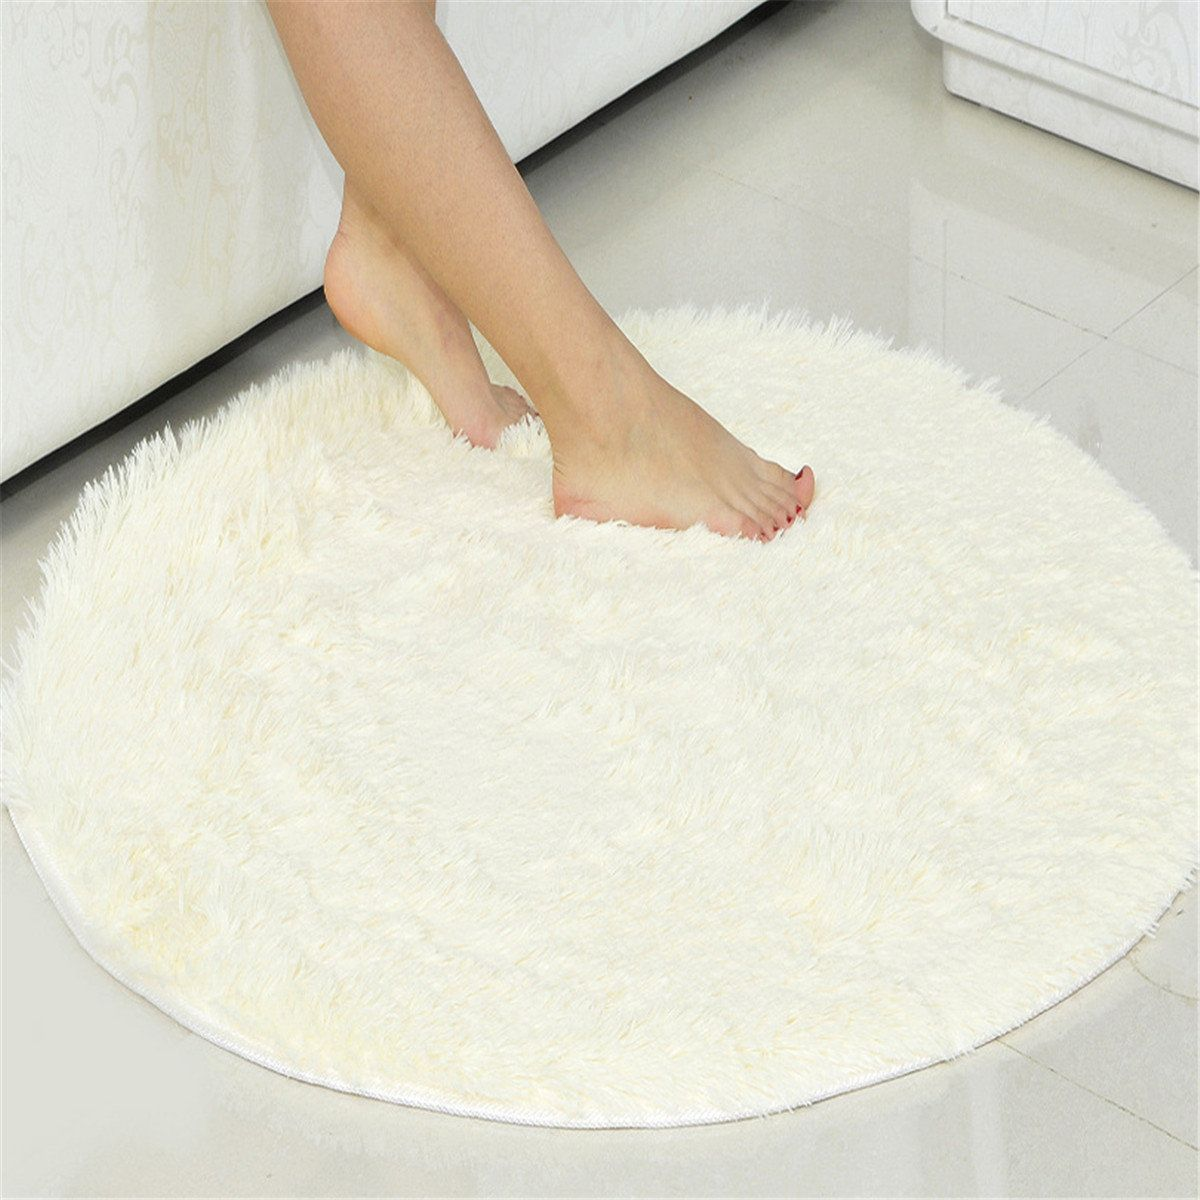 Anti Slip Mat Slaapkamer Round Fluffy Rugs Anti Skid Shaggy Area Rug Room Home Bedroom